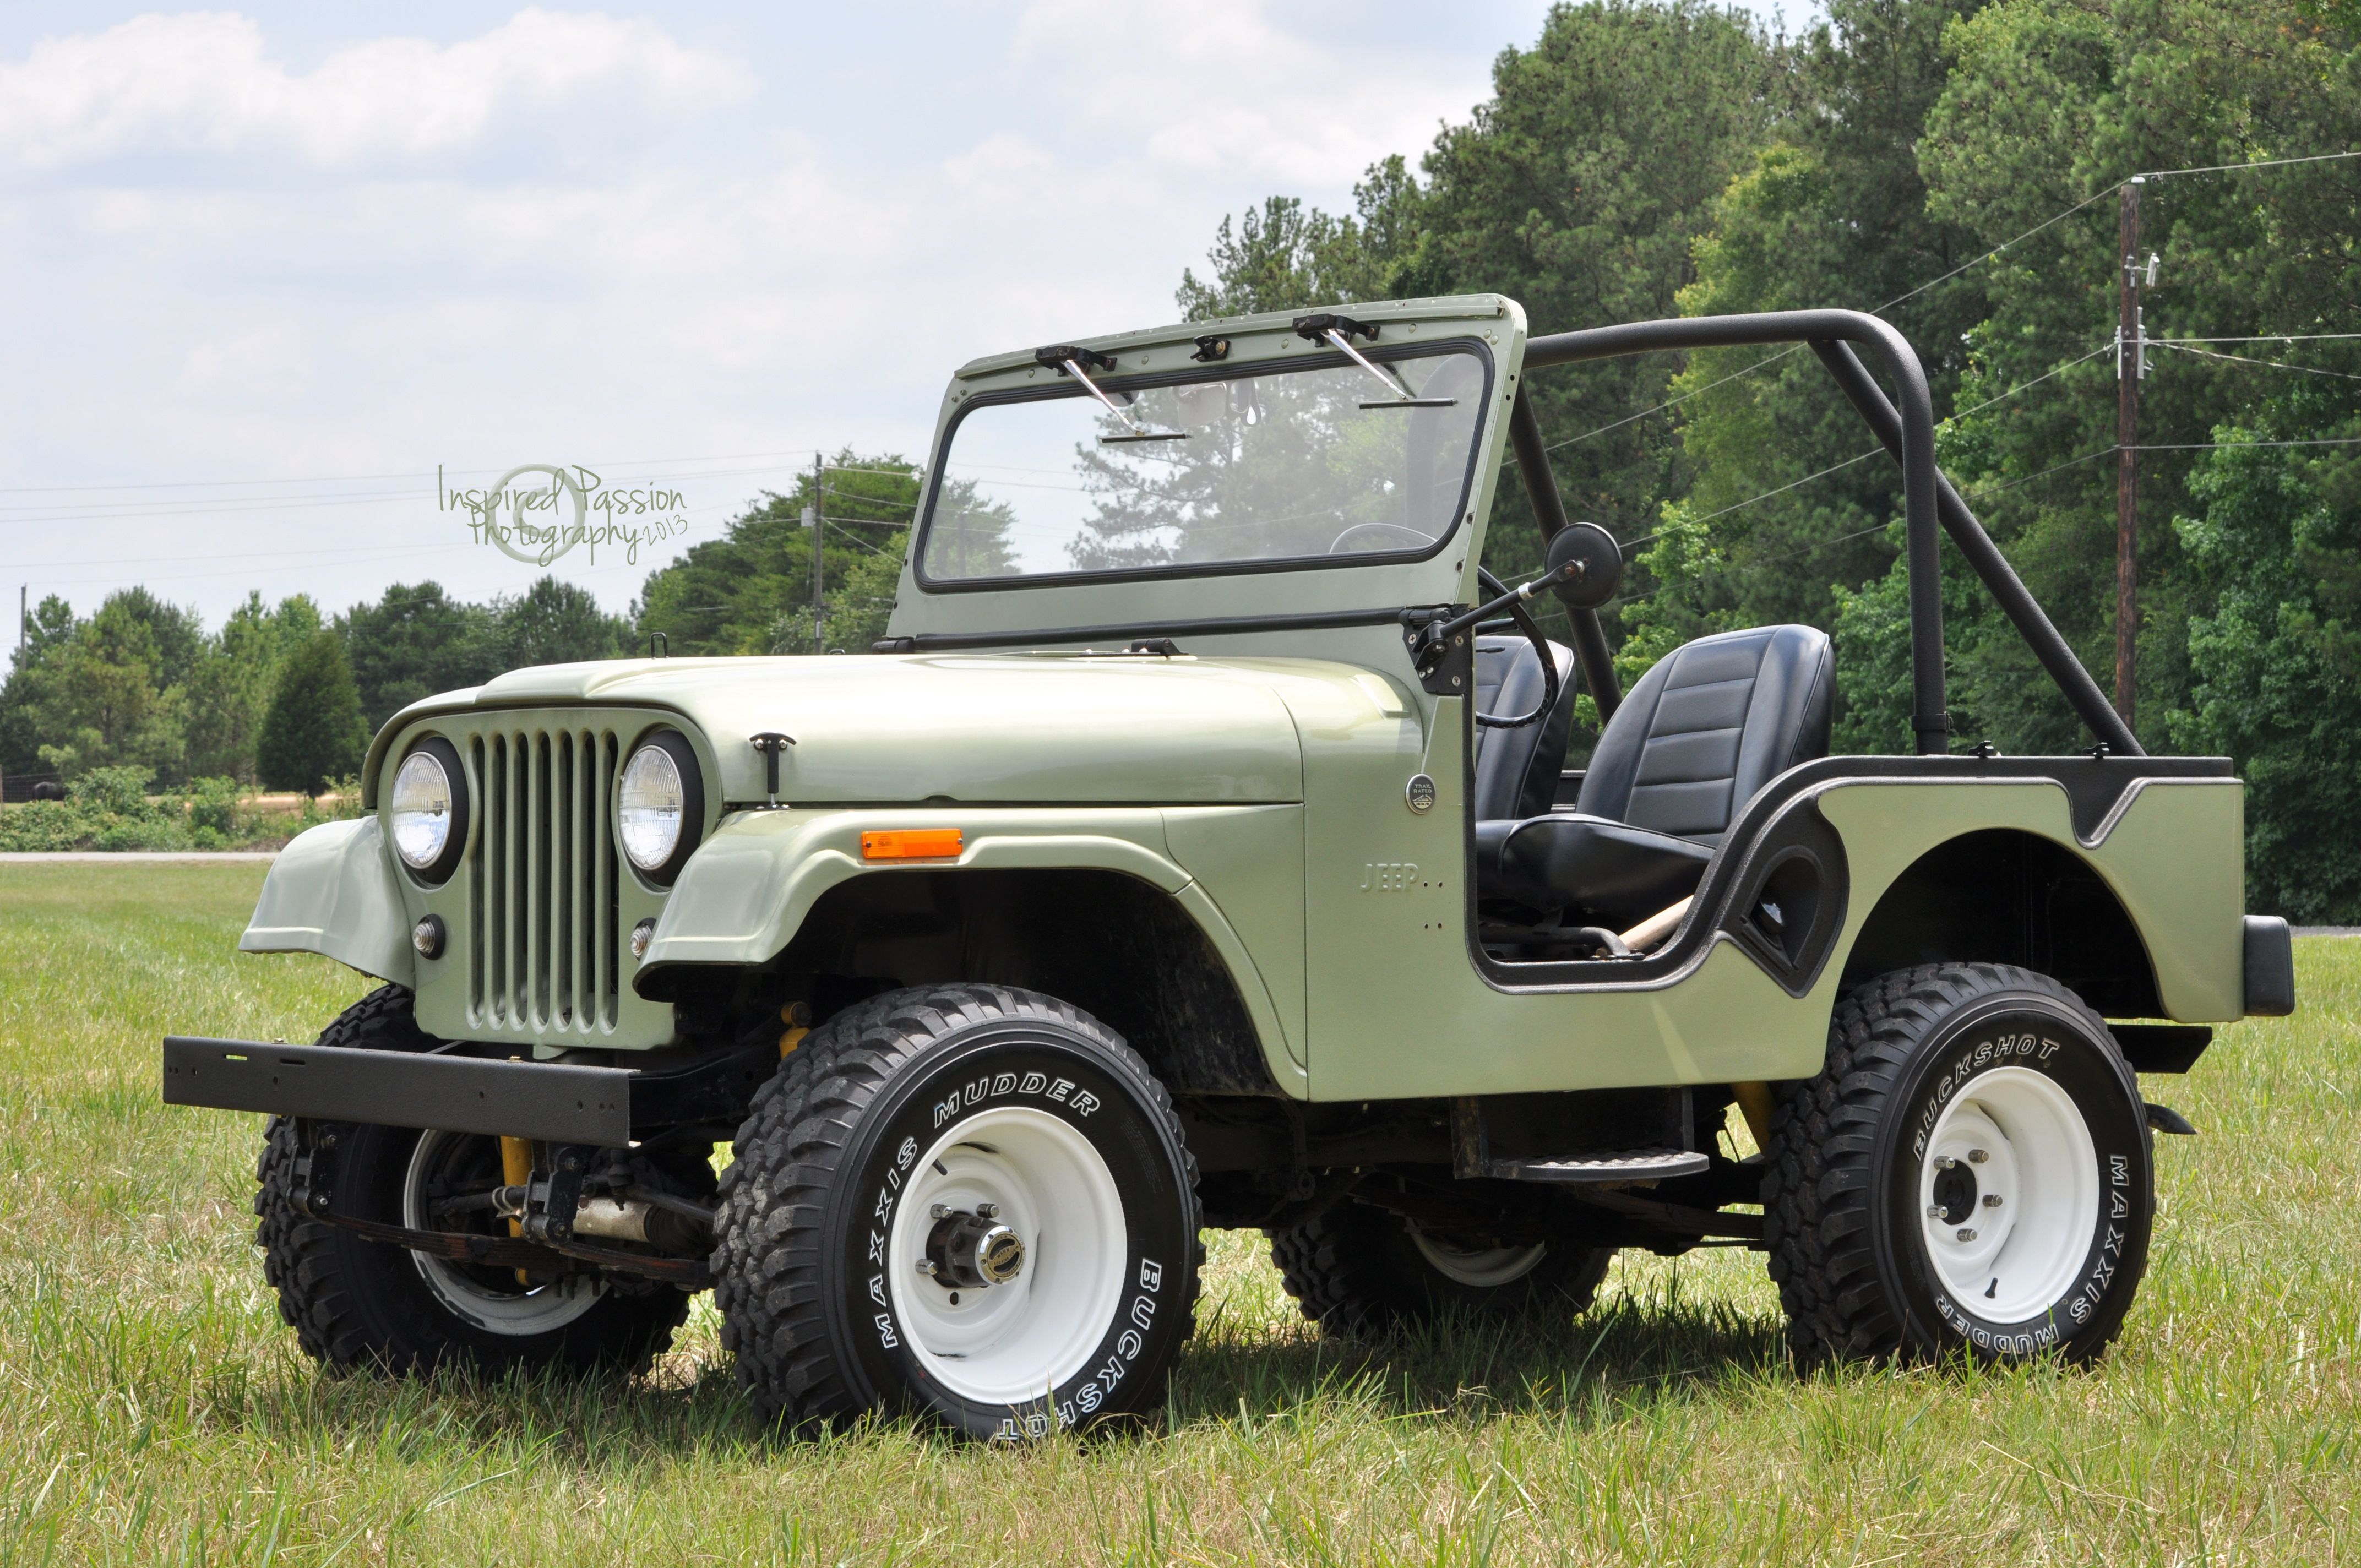 1970 1 owner cj5, restored in 2000 jeeps jeep, jeep truck, jeep1970 1 owner cj5, restored in 2000